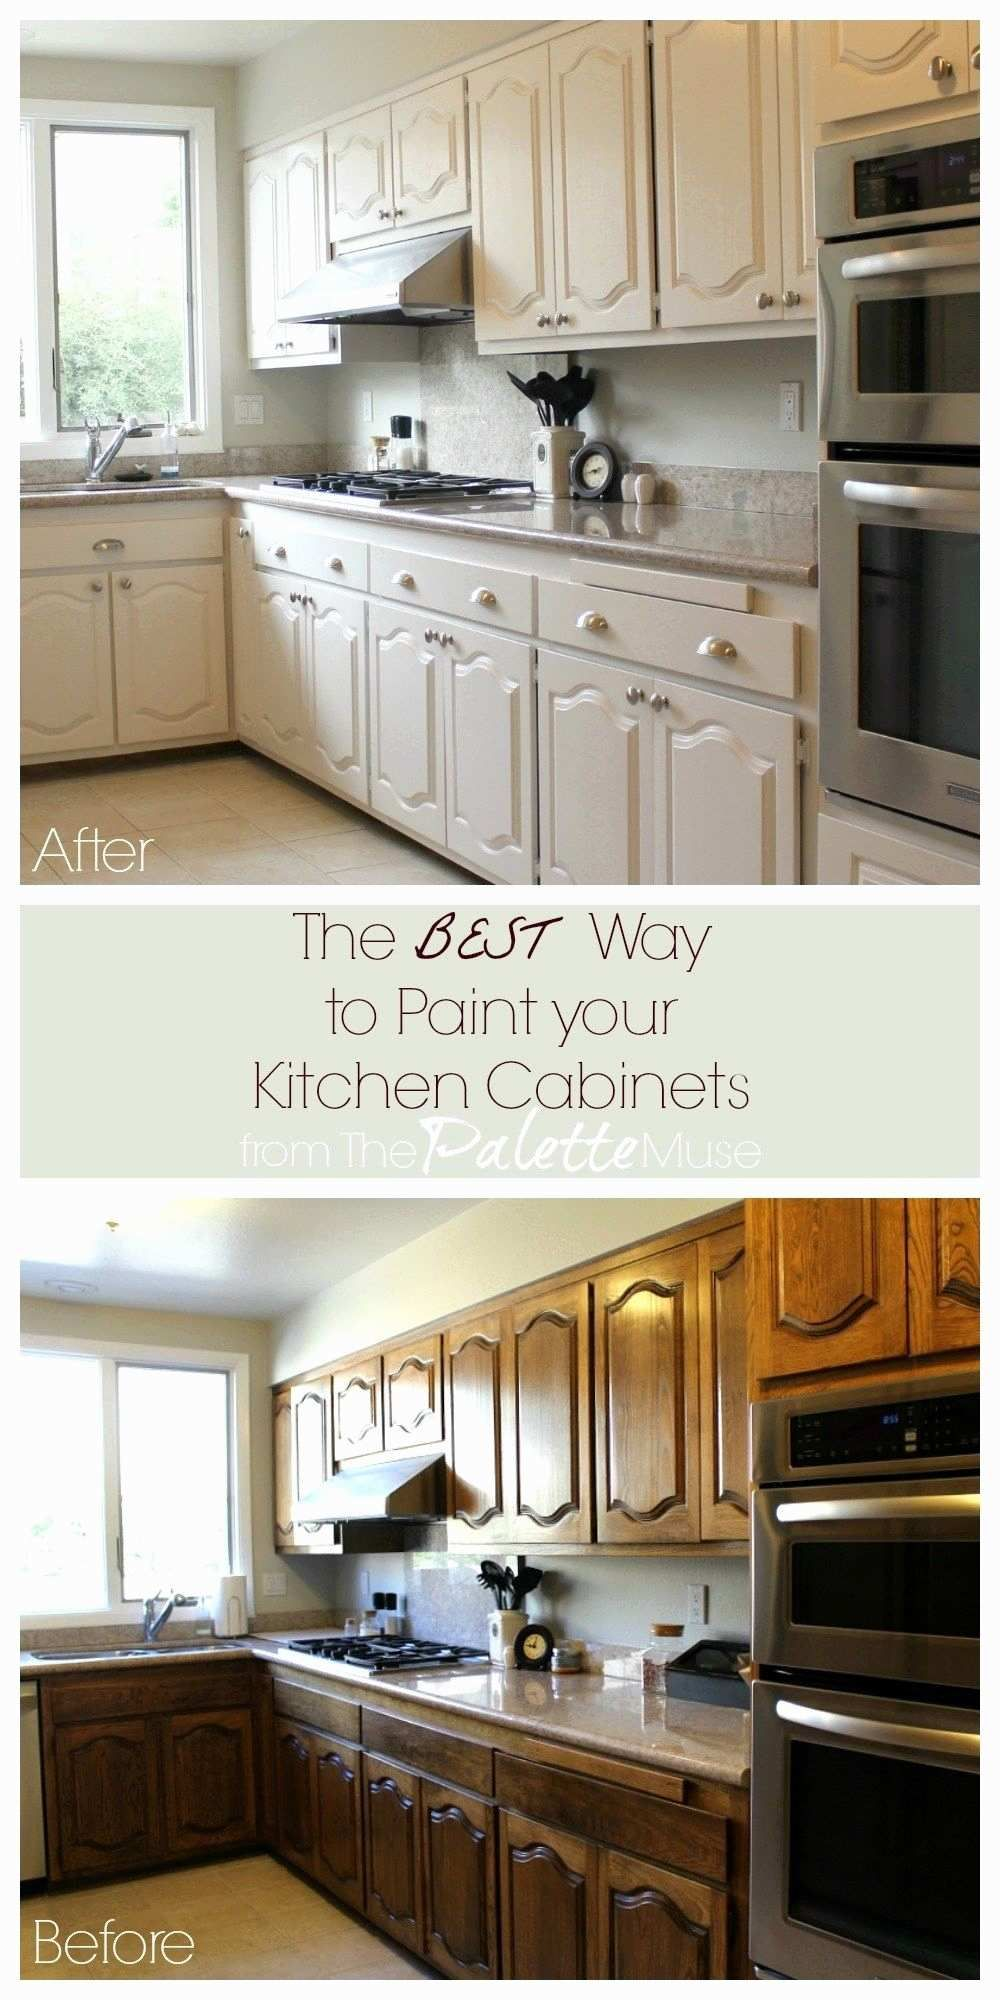 Replacement Kitchen Cabinets For Mobile Homes Pin on mobile home